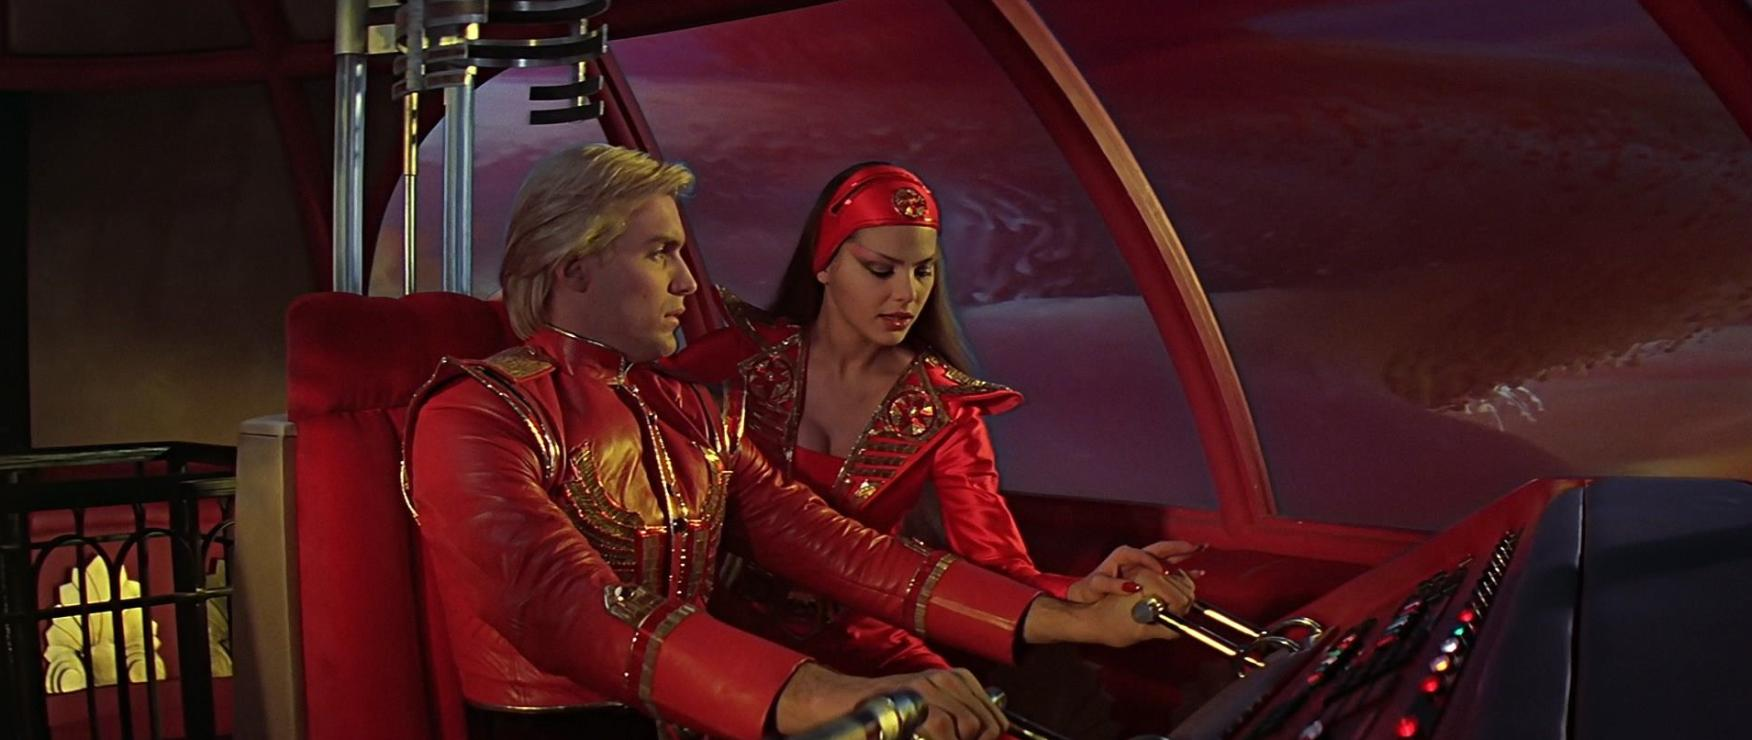 Ornella Muti and Sam J. Jones in Flash Gordon (1980)